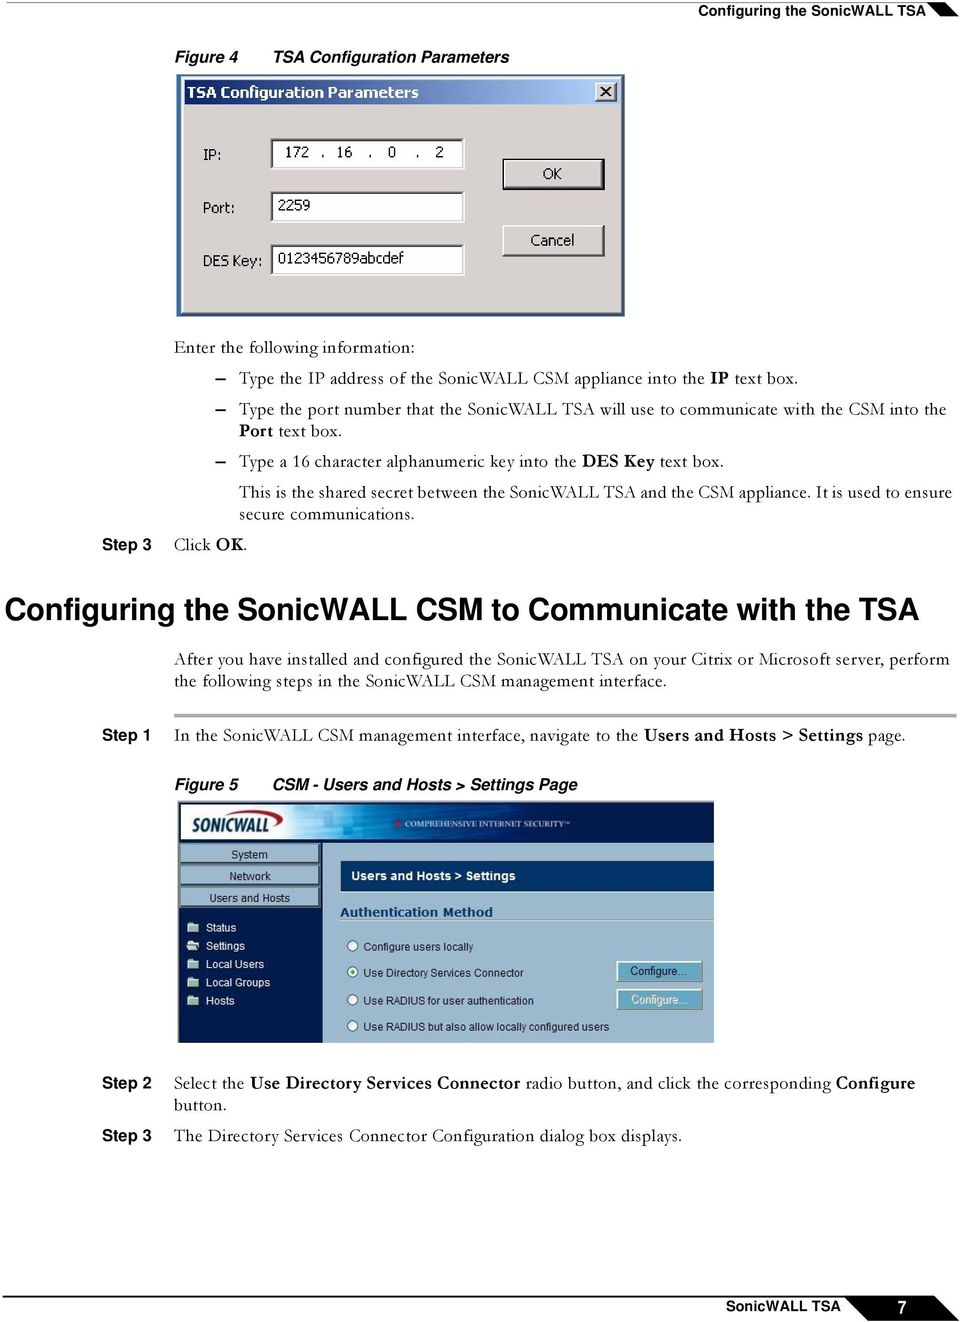 Configuring SonicWALL TSA on Citrix and Terminal Services